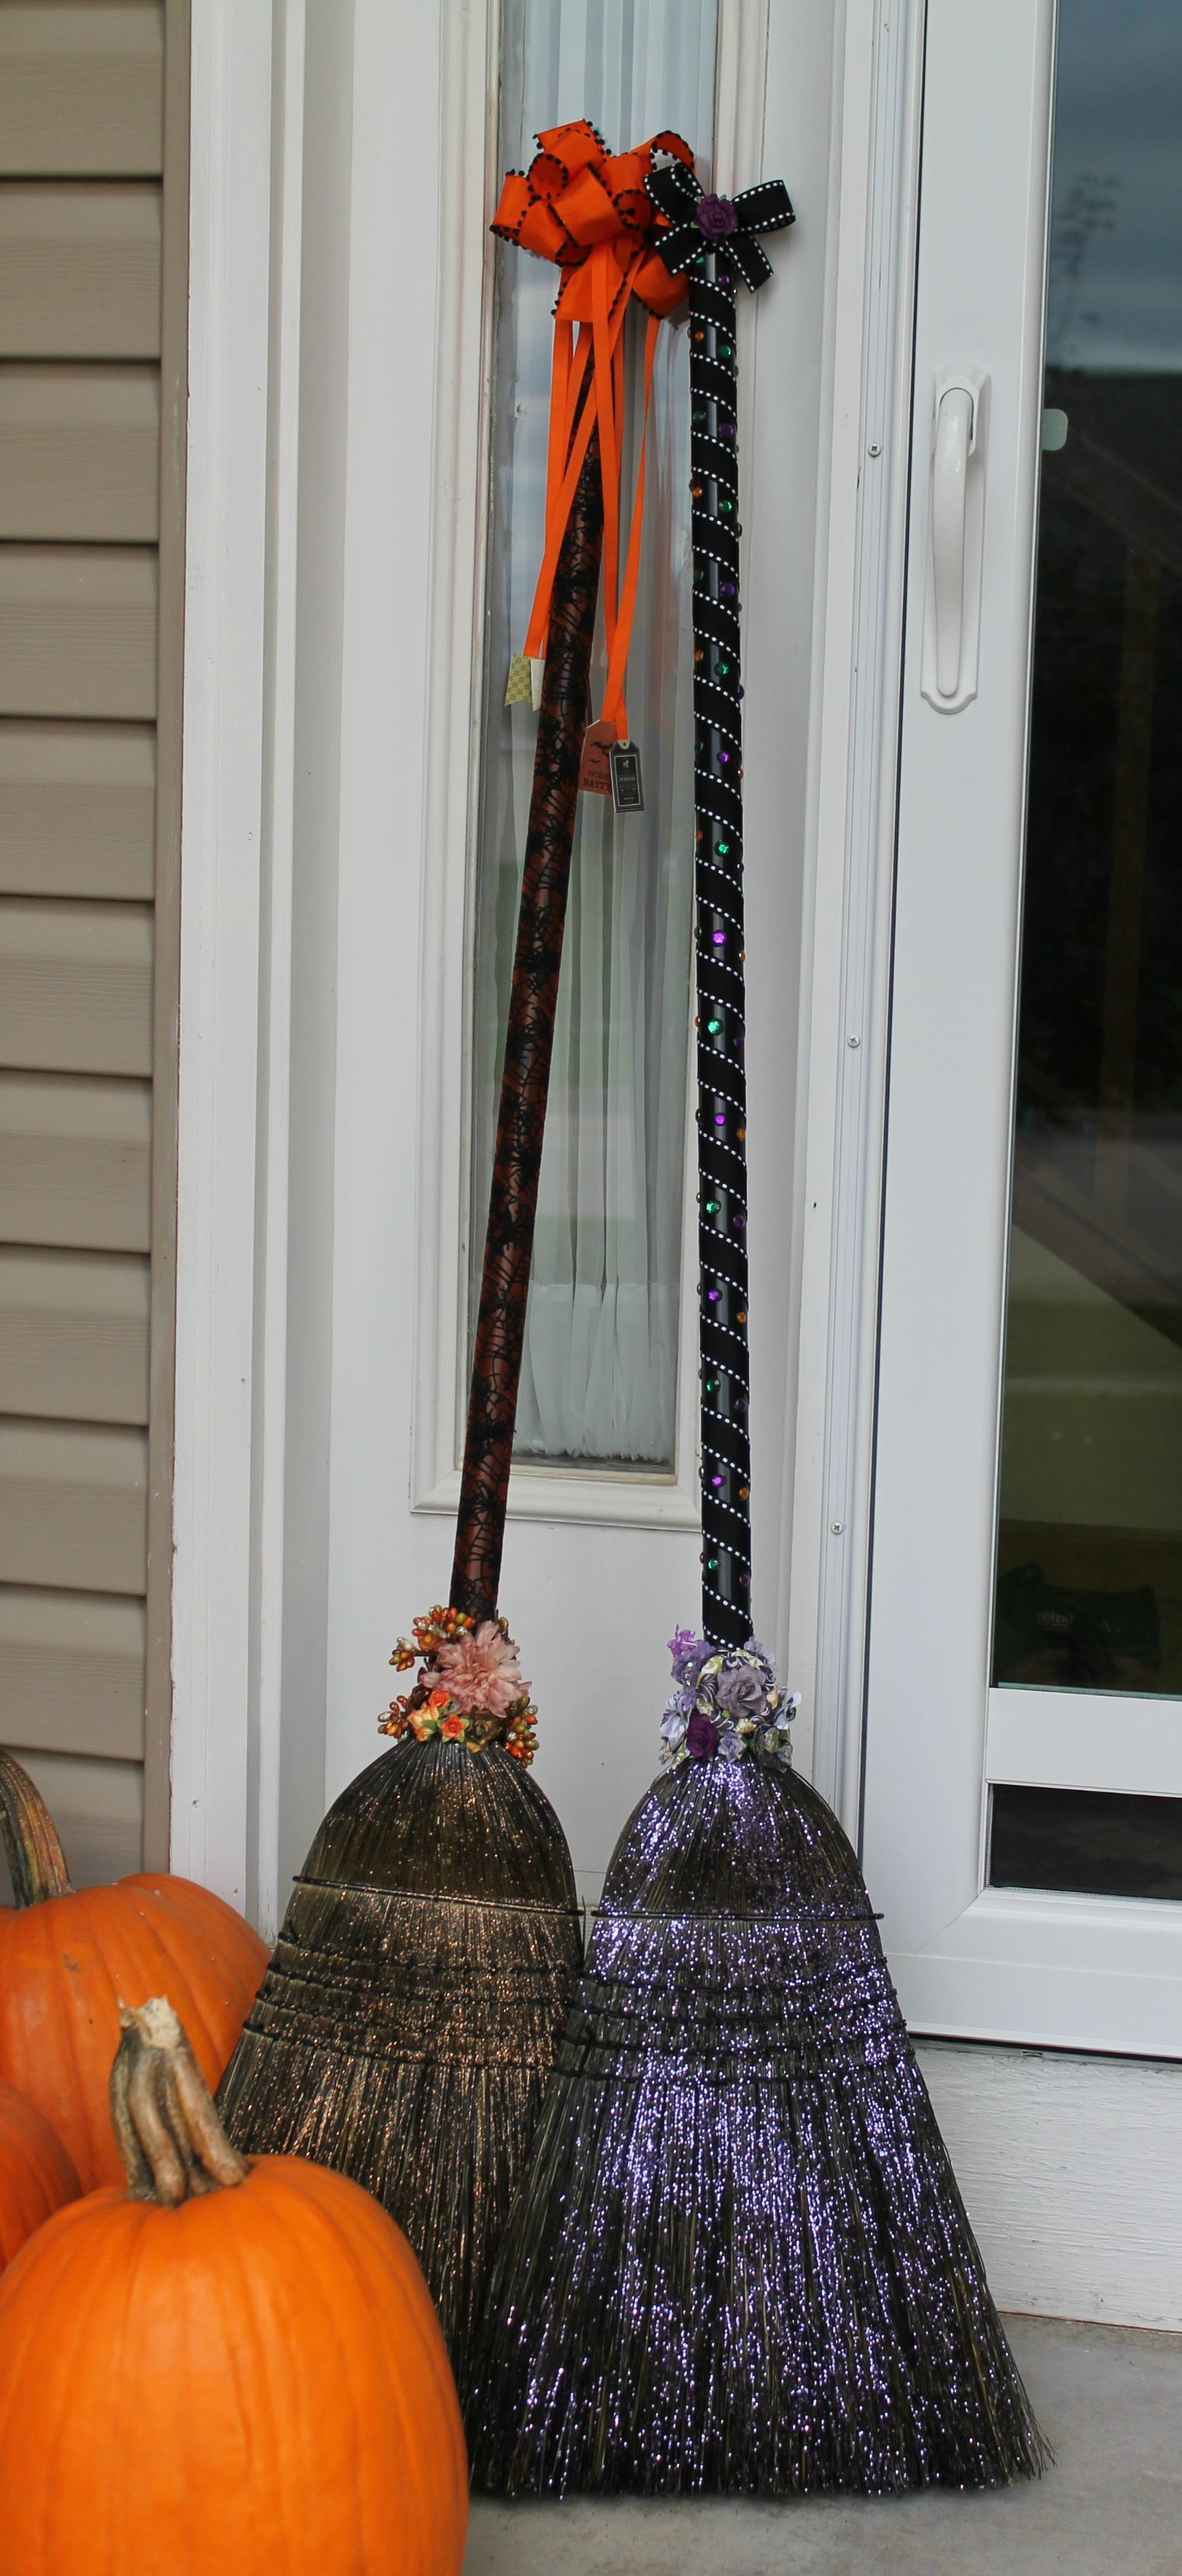 Halloween Decor Hacks Witch broom, Holidays and Halloween ideas - Cheap Diy Halloween Decorations